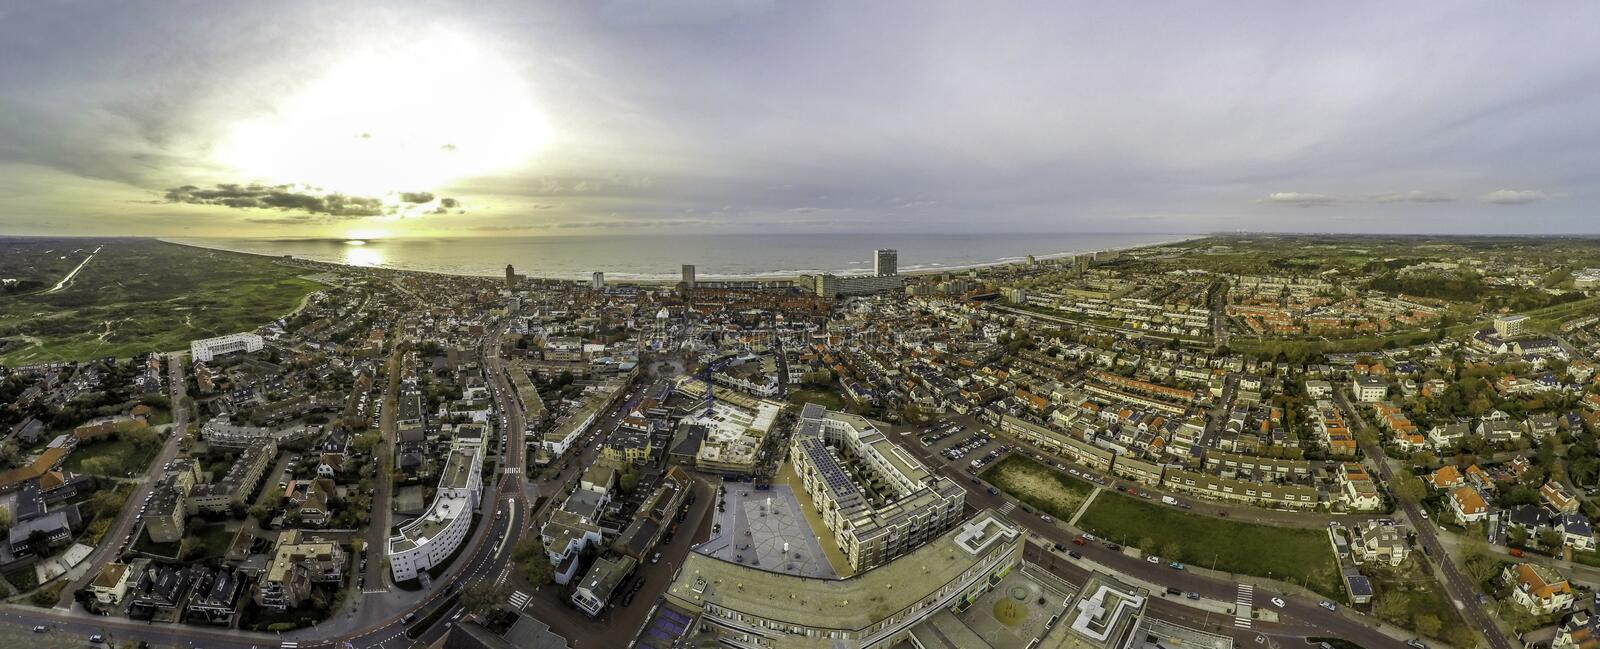 Zandvoort aerial picture royalty free stock photo